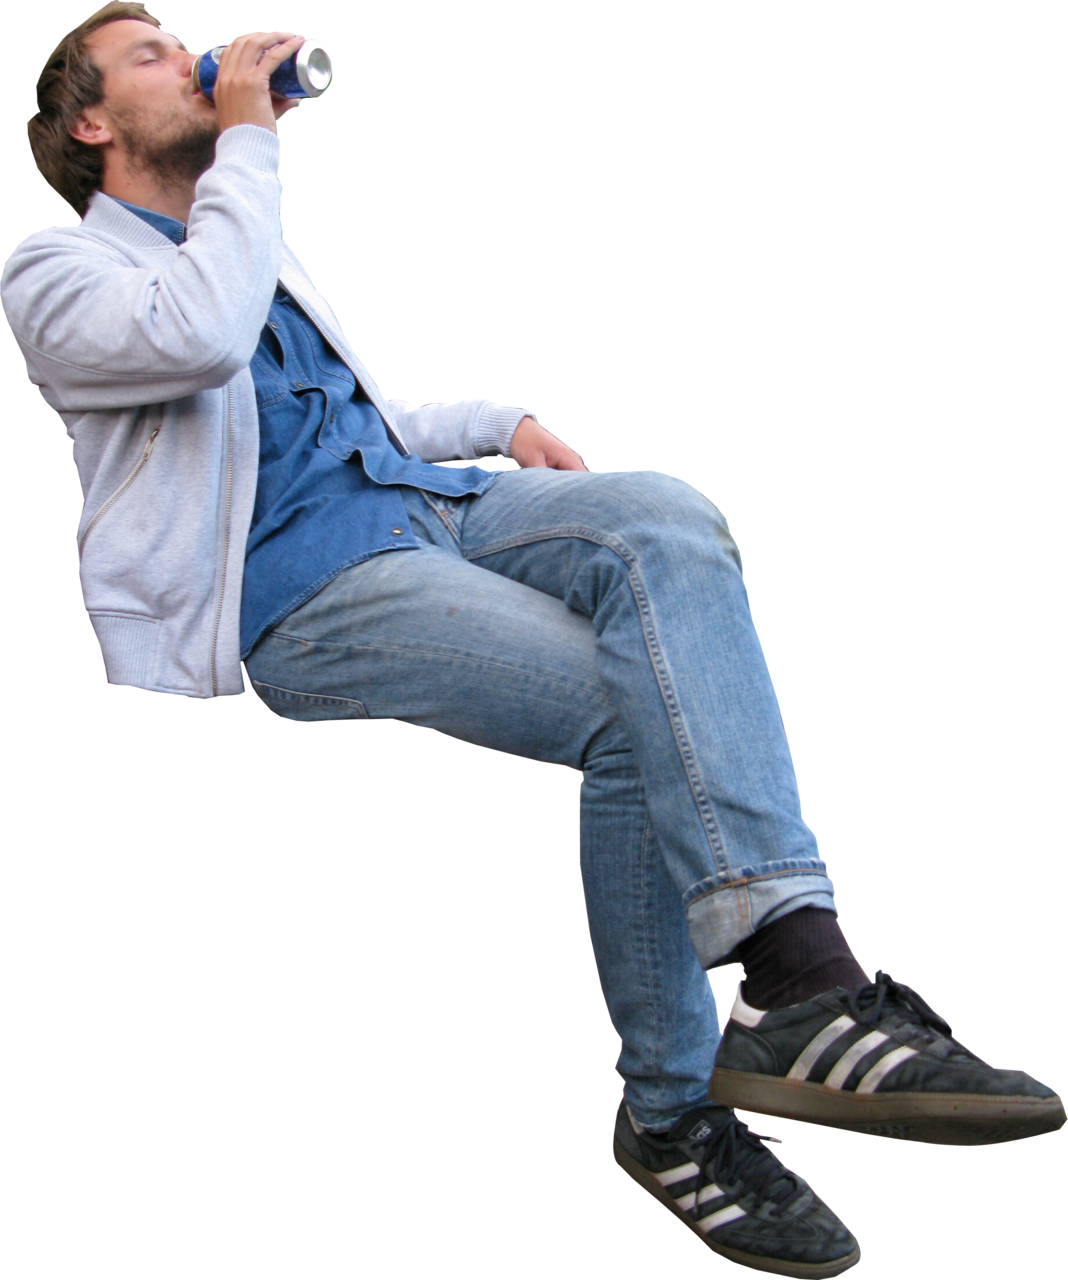 Person sitting on bench png. Clip art man transprent